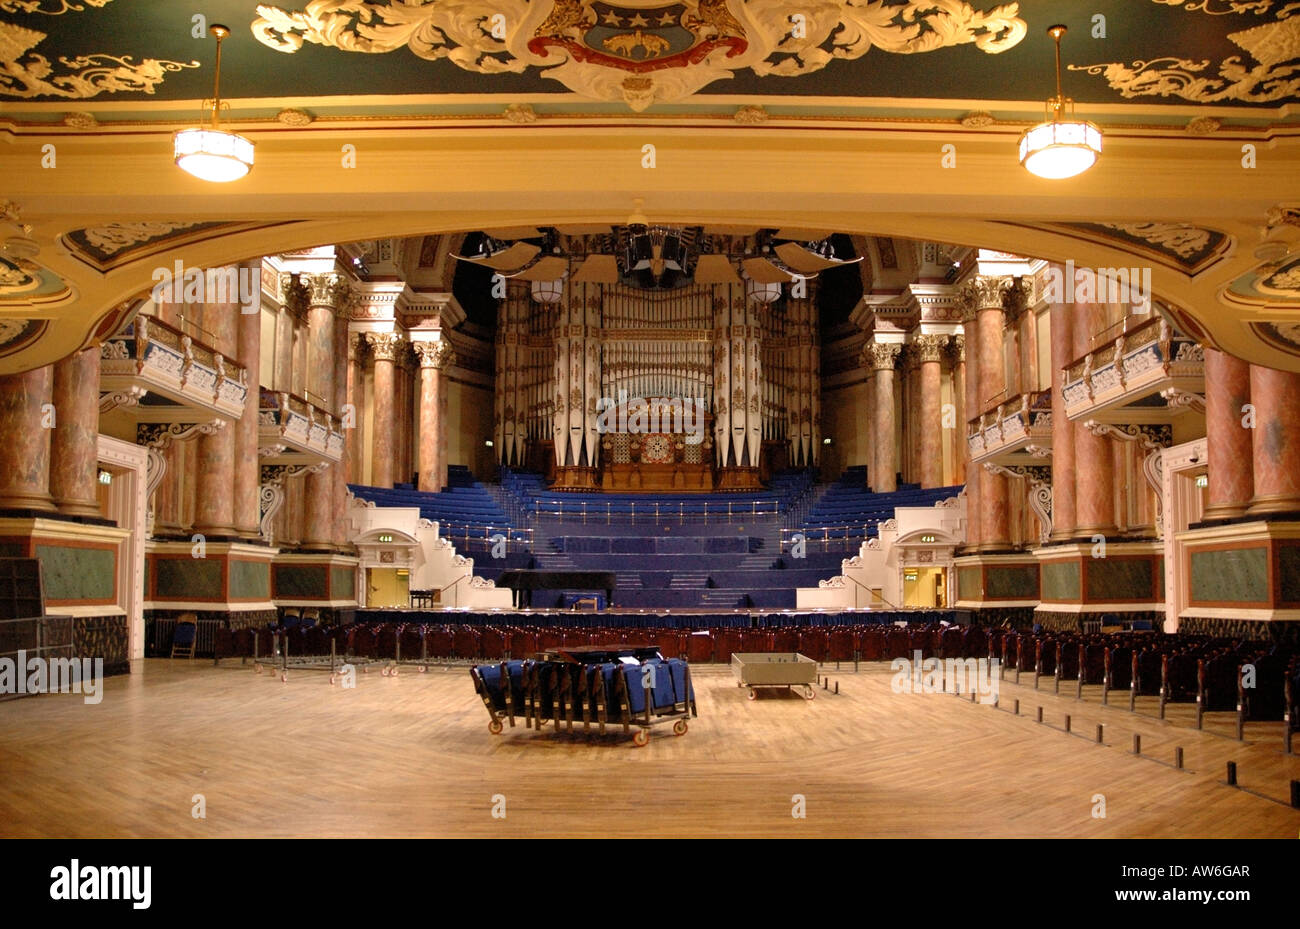 The Victoria Hall, Leeds Town Hall in preparation for an event - Stock Image